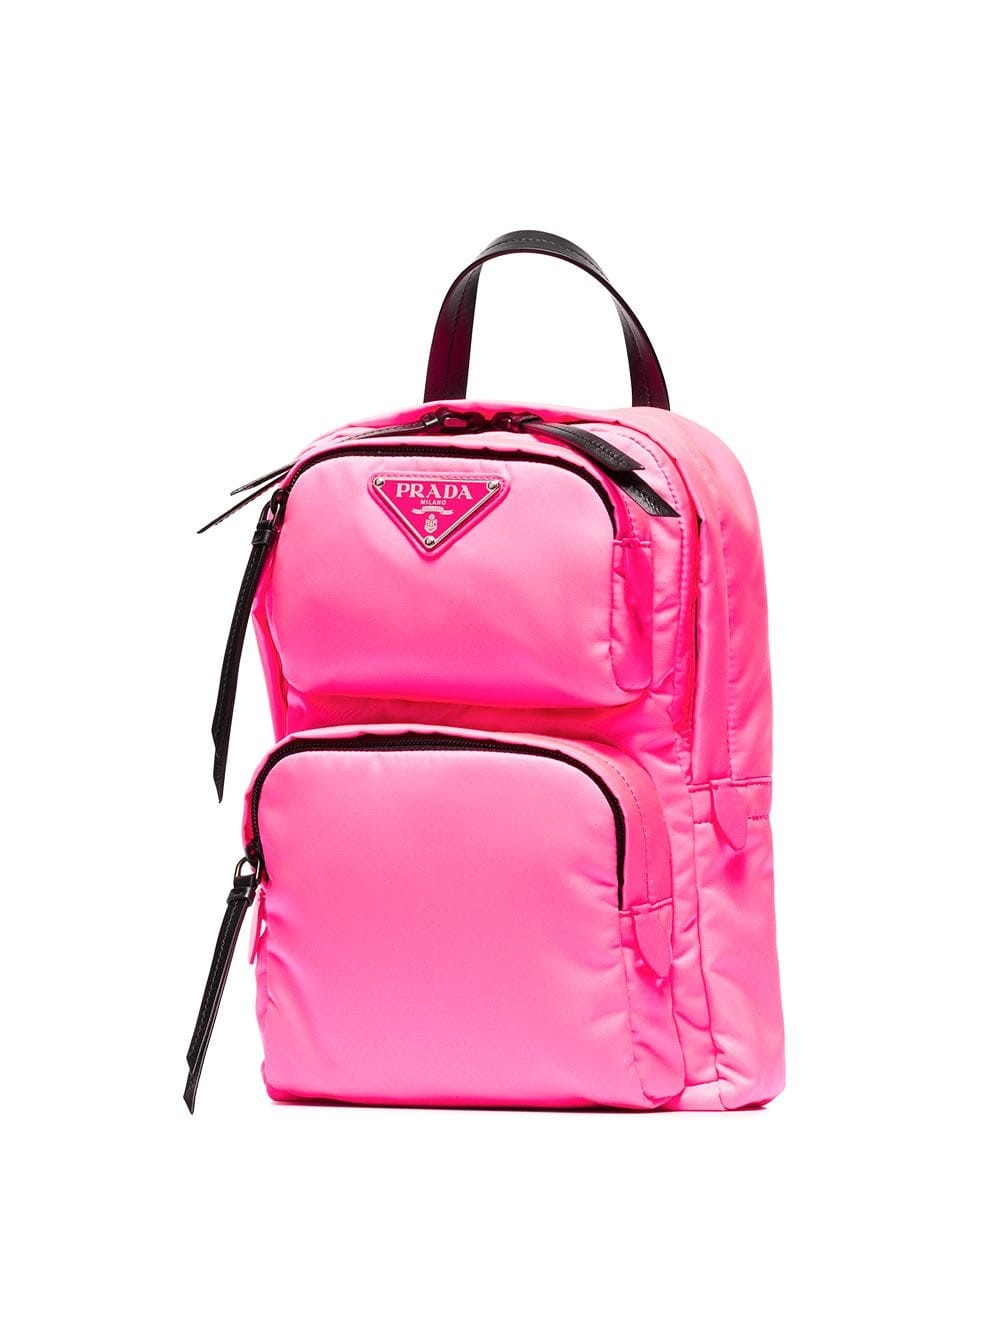 614603d85f1a prada FLURO BACKPACK available on montiboutique.com - 23466